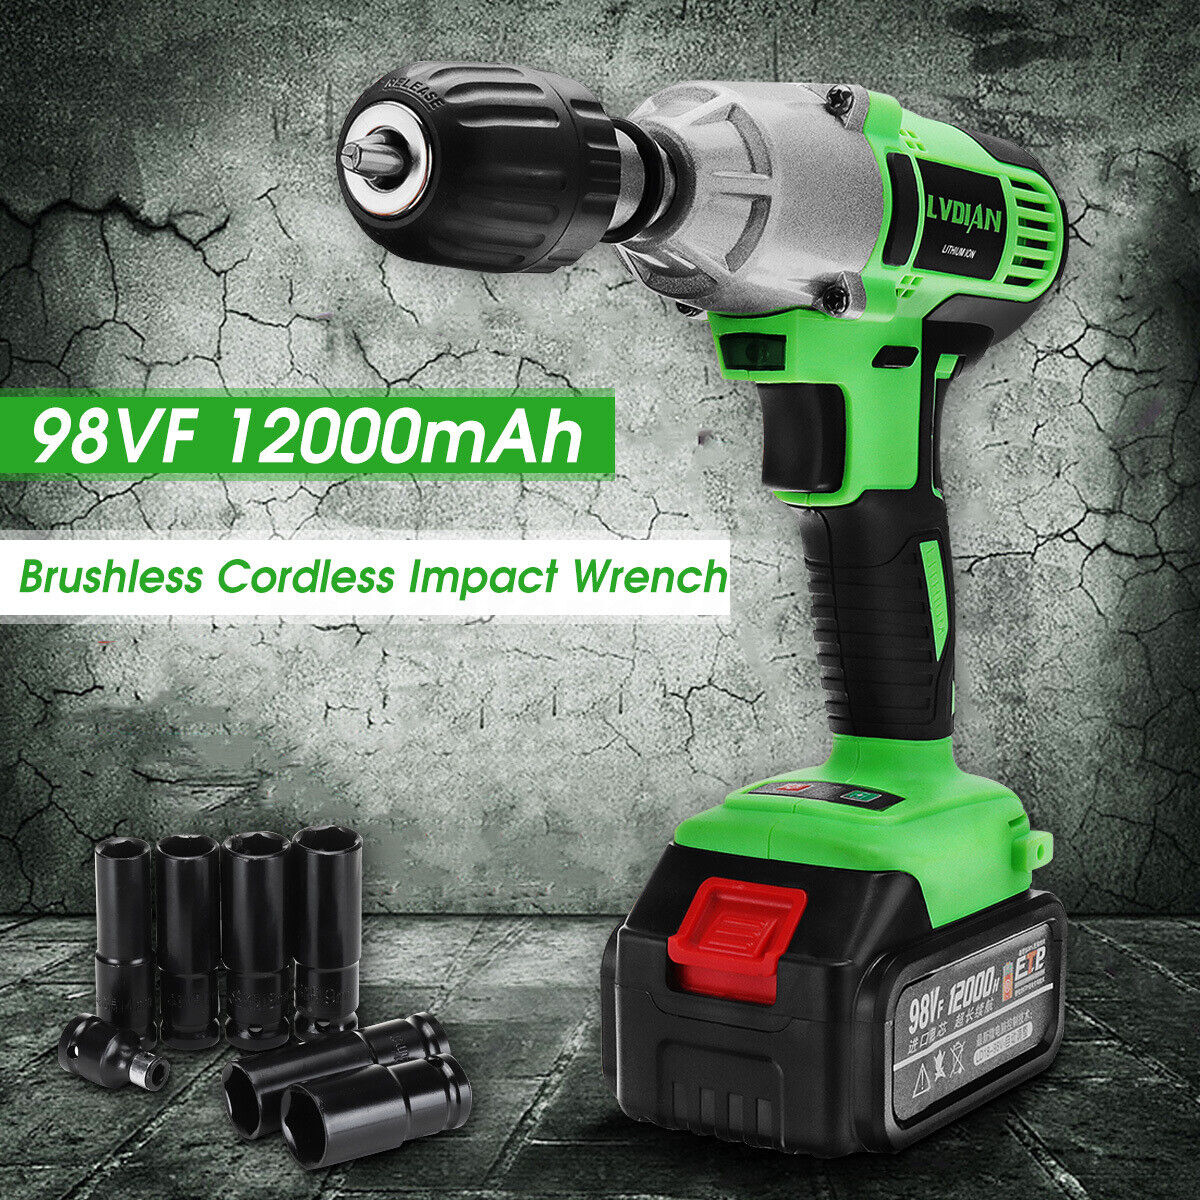 98VF Cordless Brushless Impact Wrench 12000mAh 3/8'' Drive D